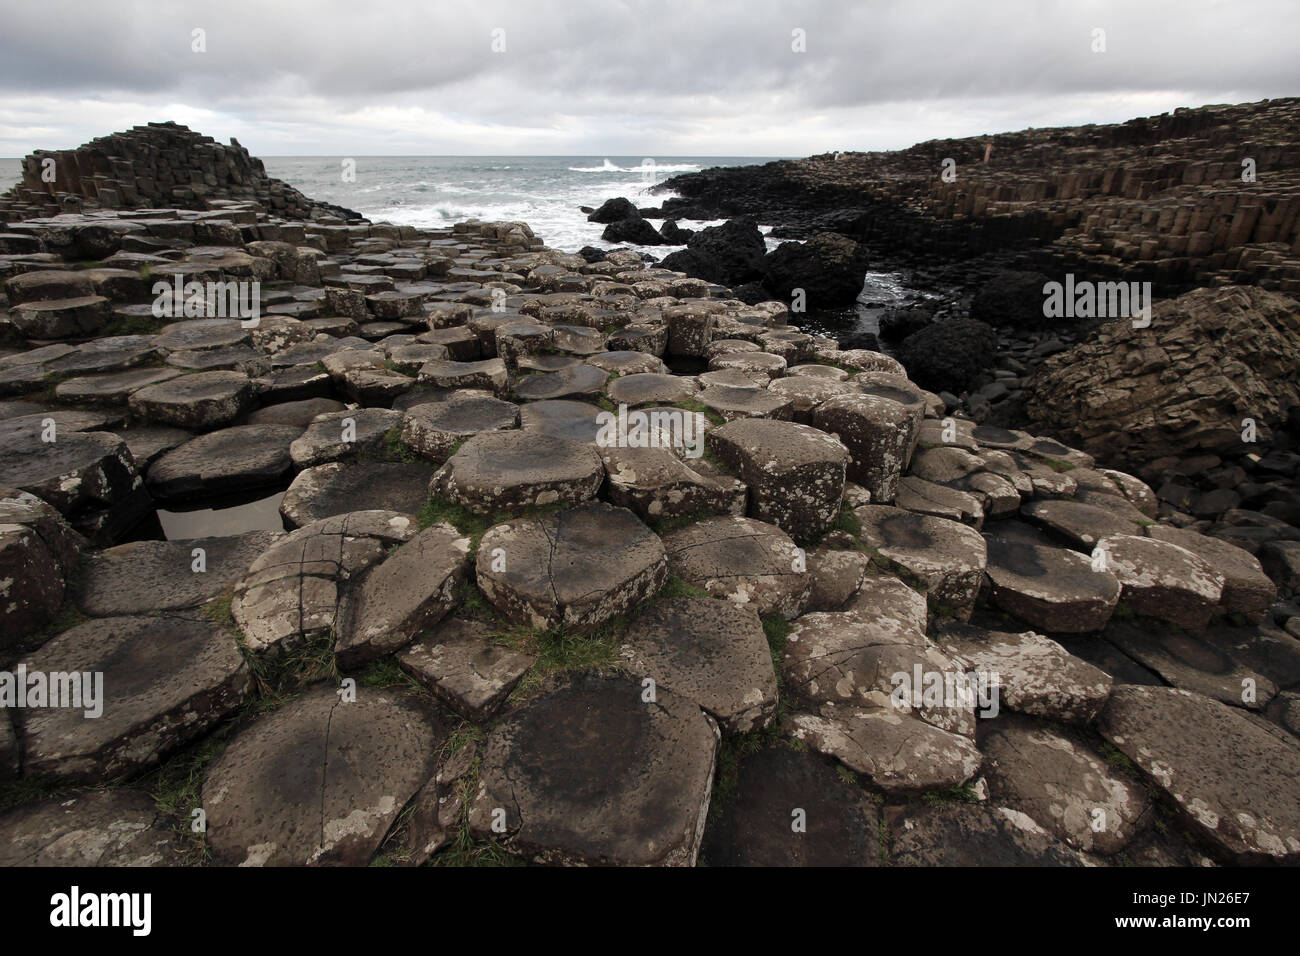 famous tourist site in Northern Ireland, film set of Dracula movie - Stock Image